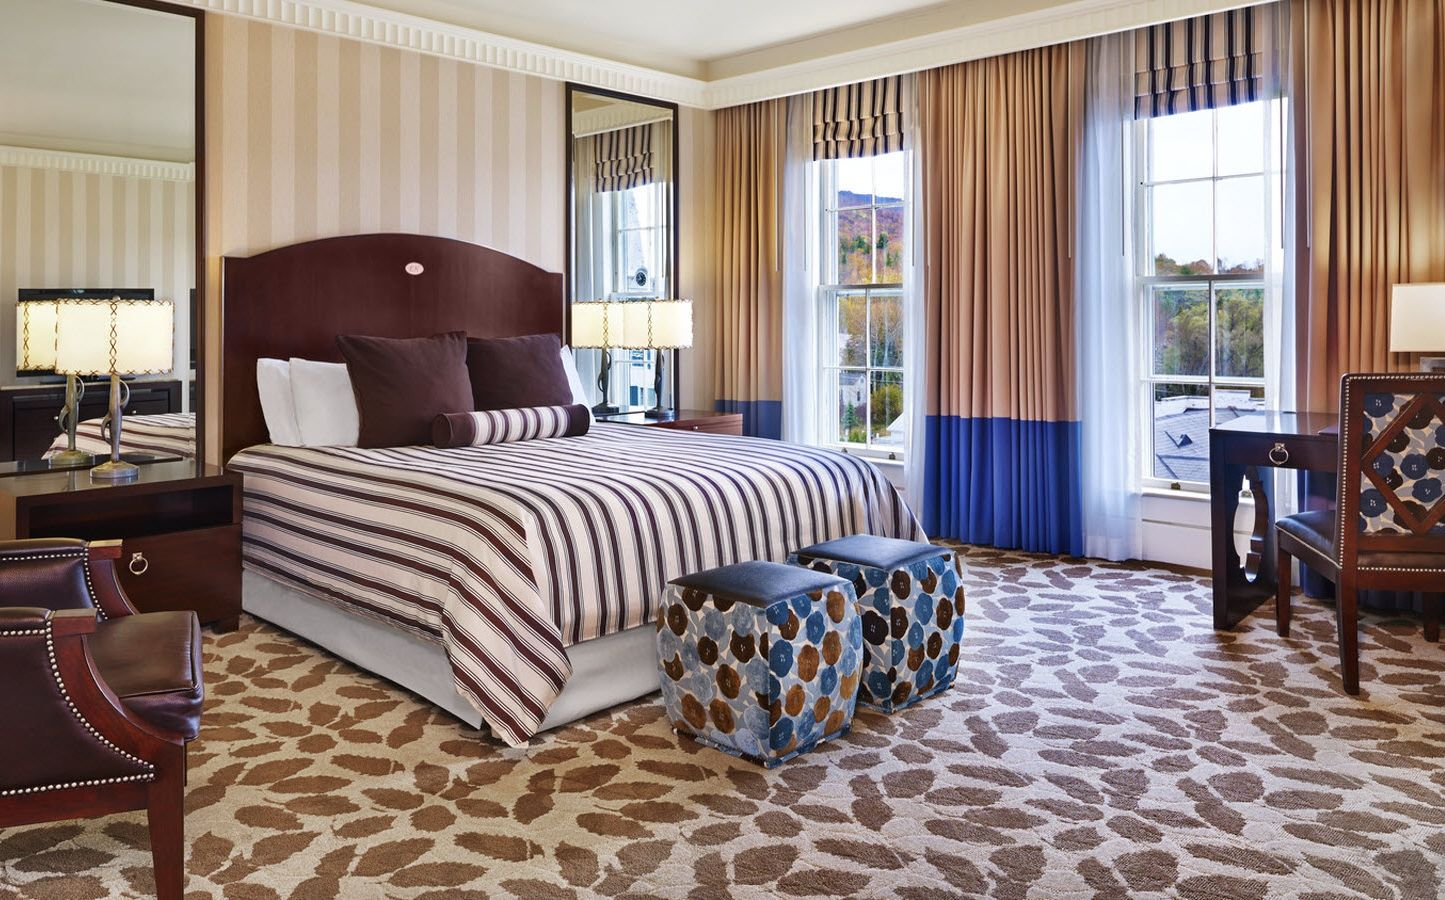 The Equinox Main Hotel, Deluxe Guest Room | The Equinox, a Luxury ...